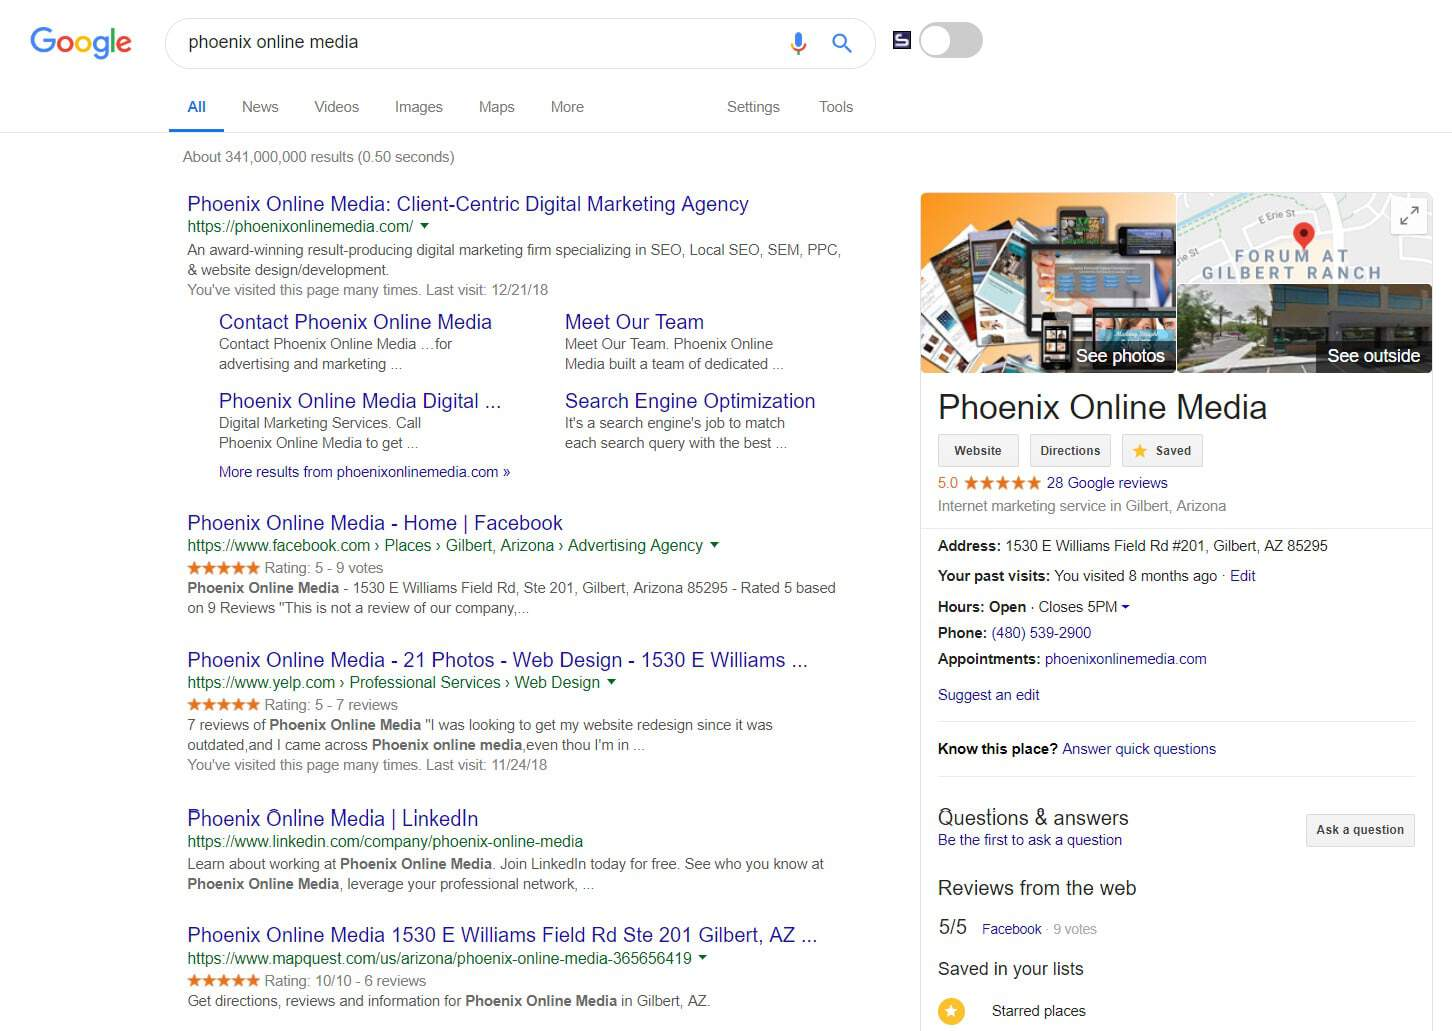 An example of a brand search on Google using ours as an example.